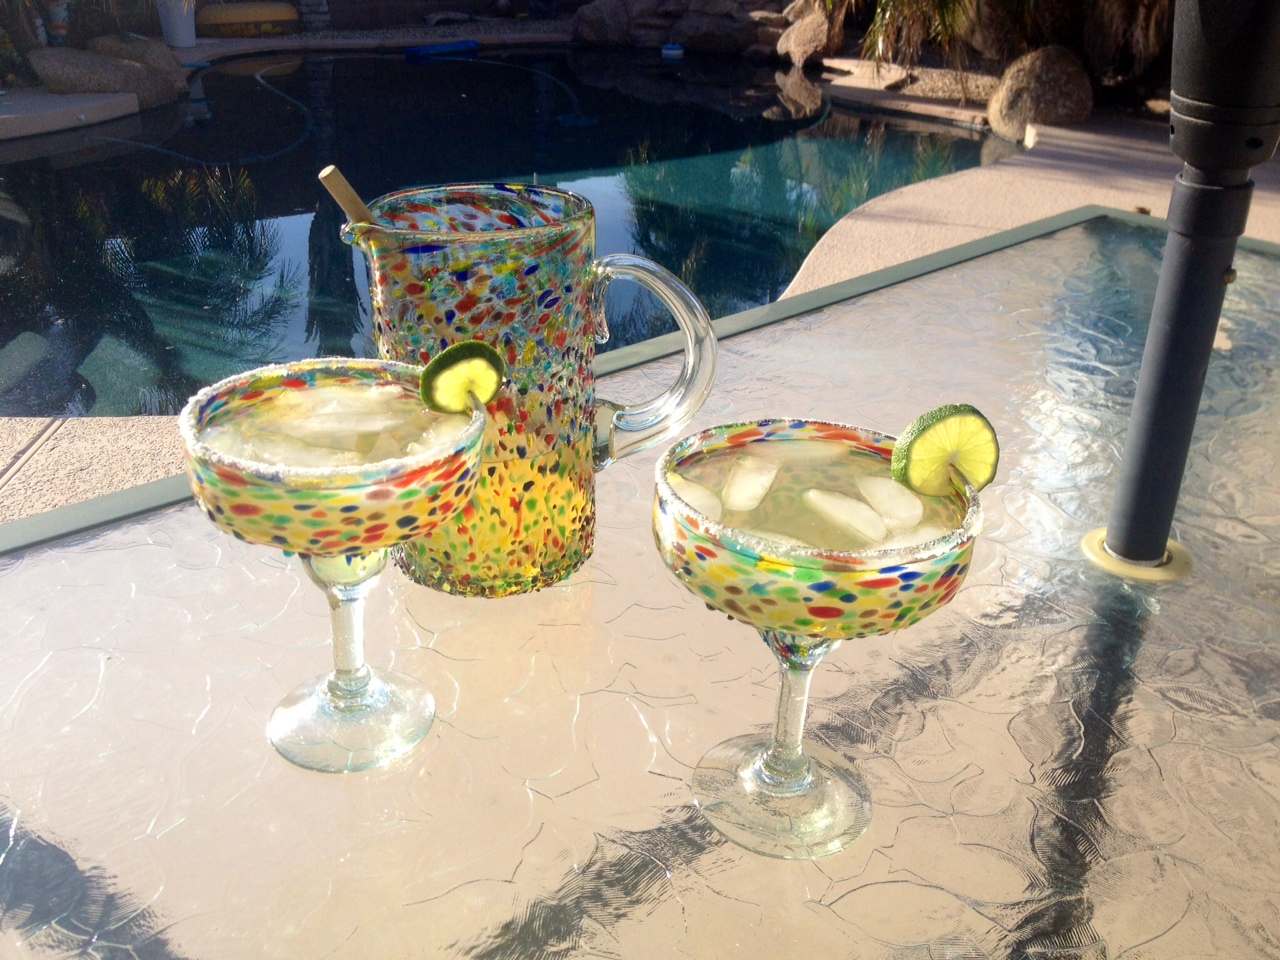 Bambeco recycled glassware margarita set